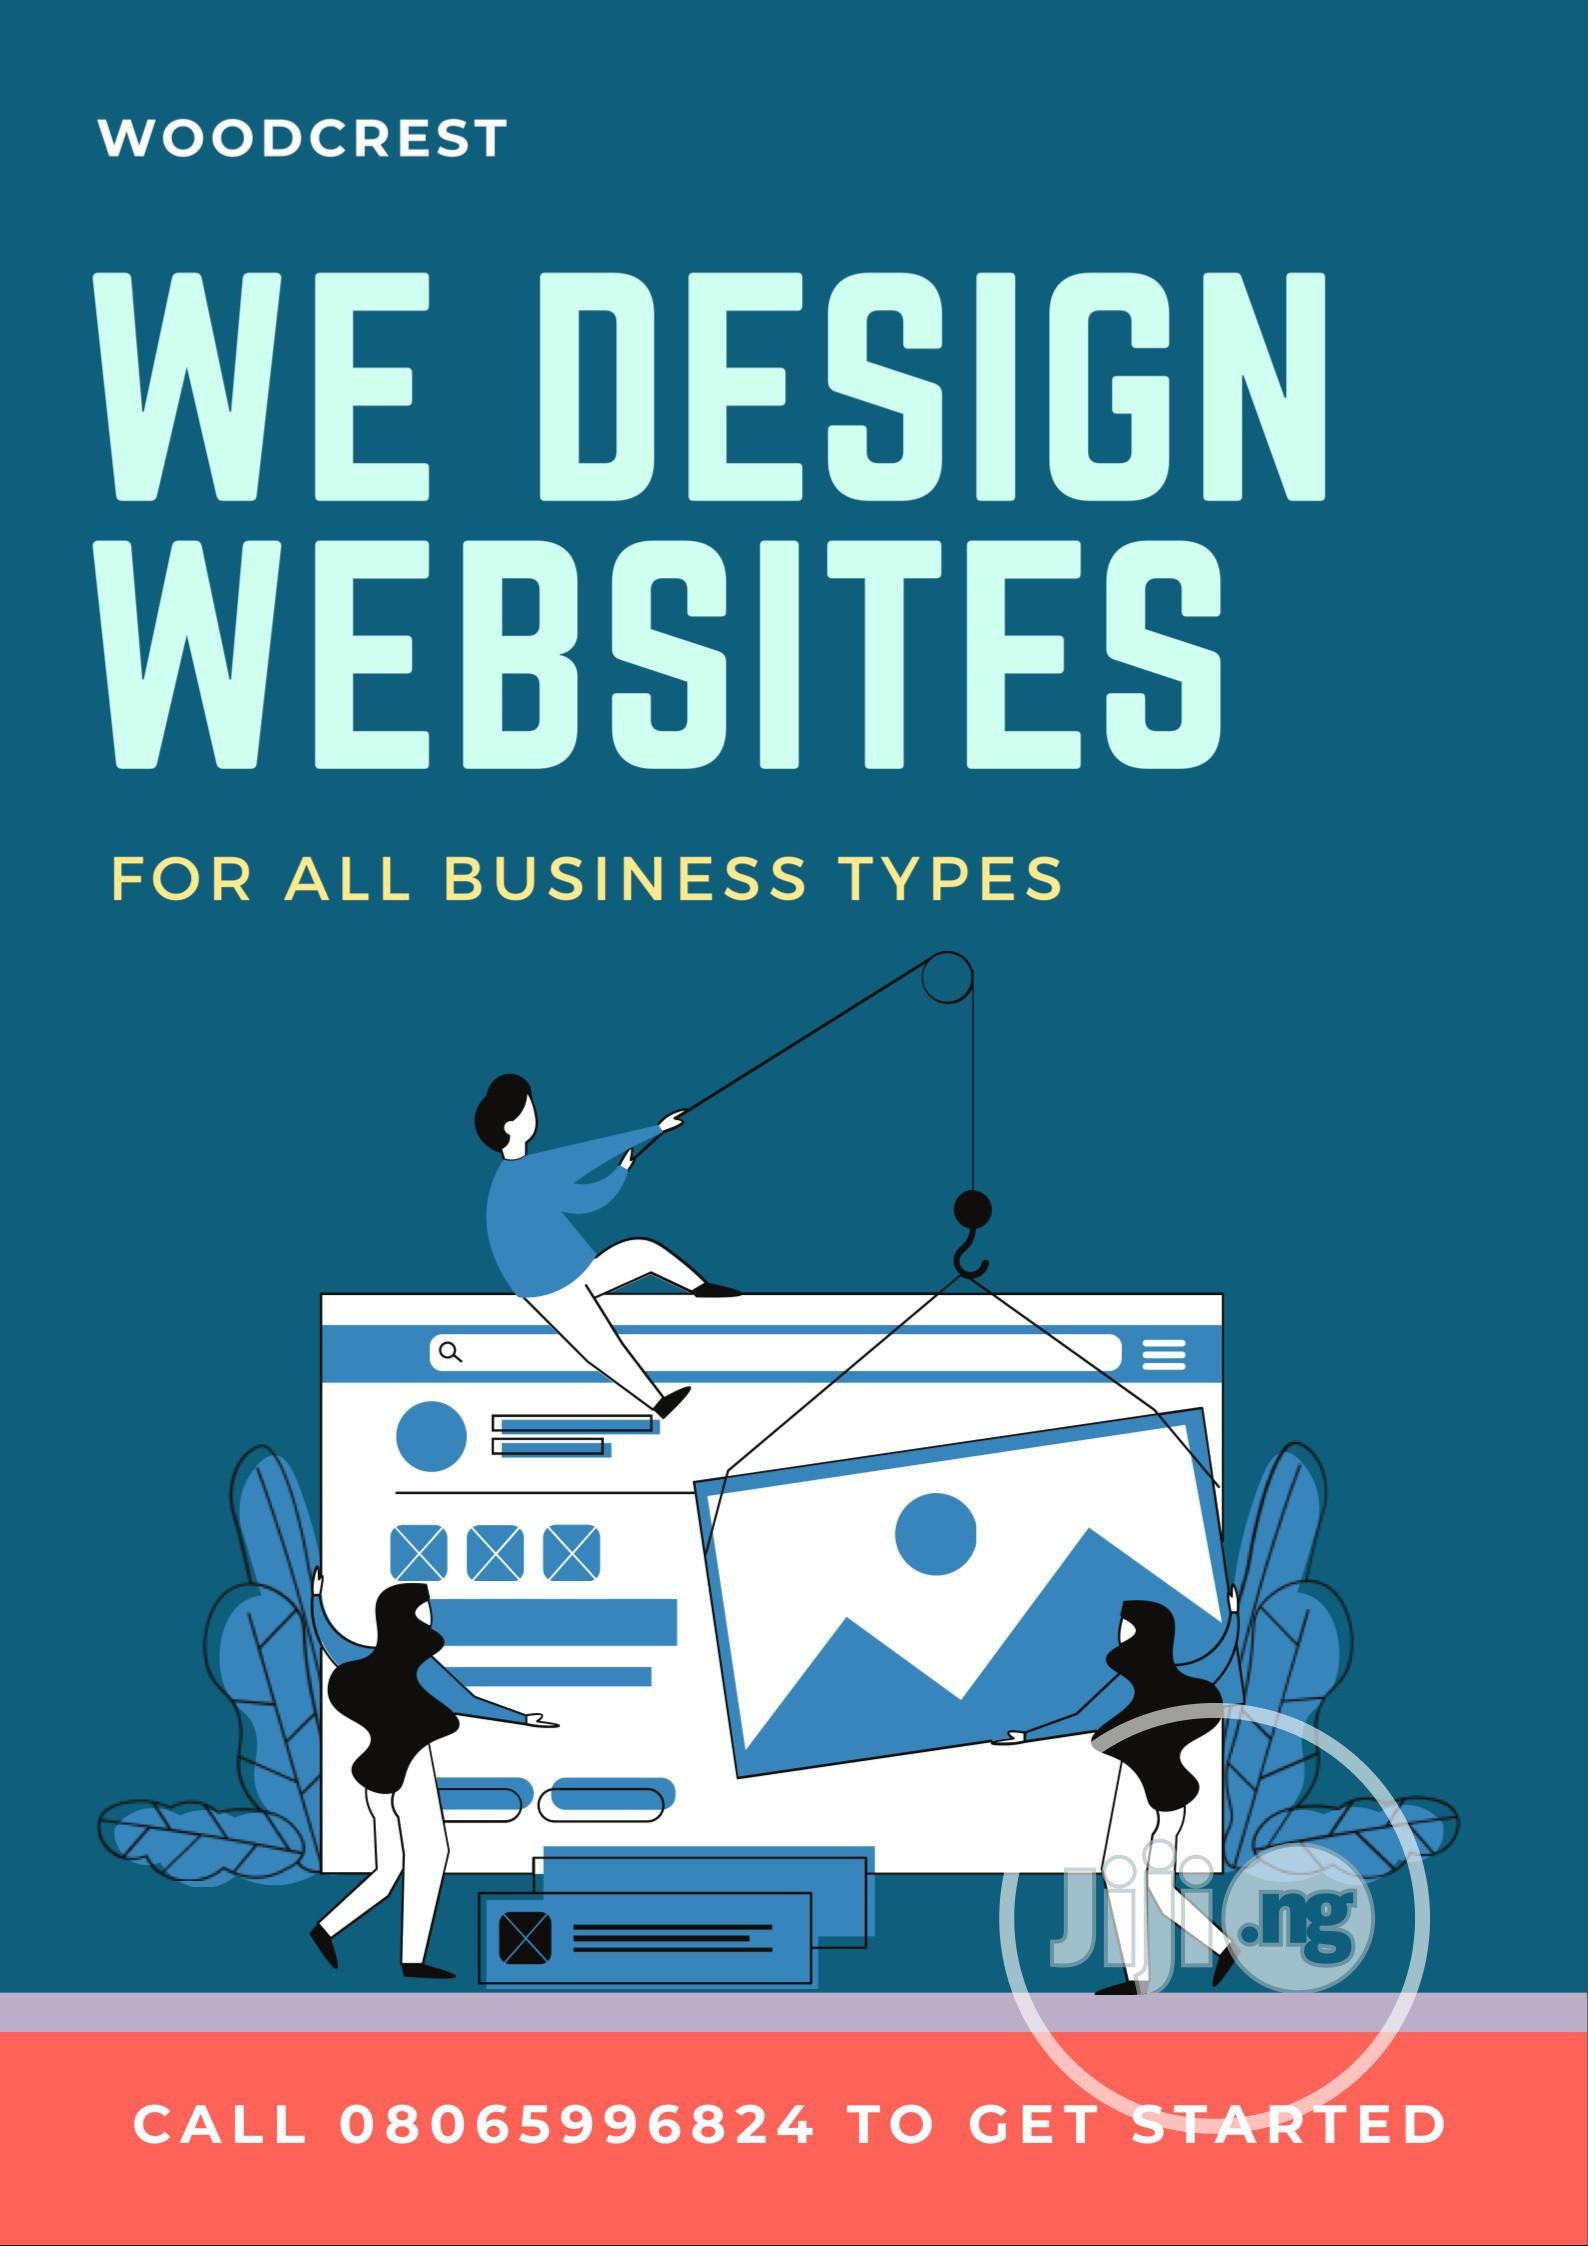 Quality Web Design And Development For All Business Types And Services